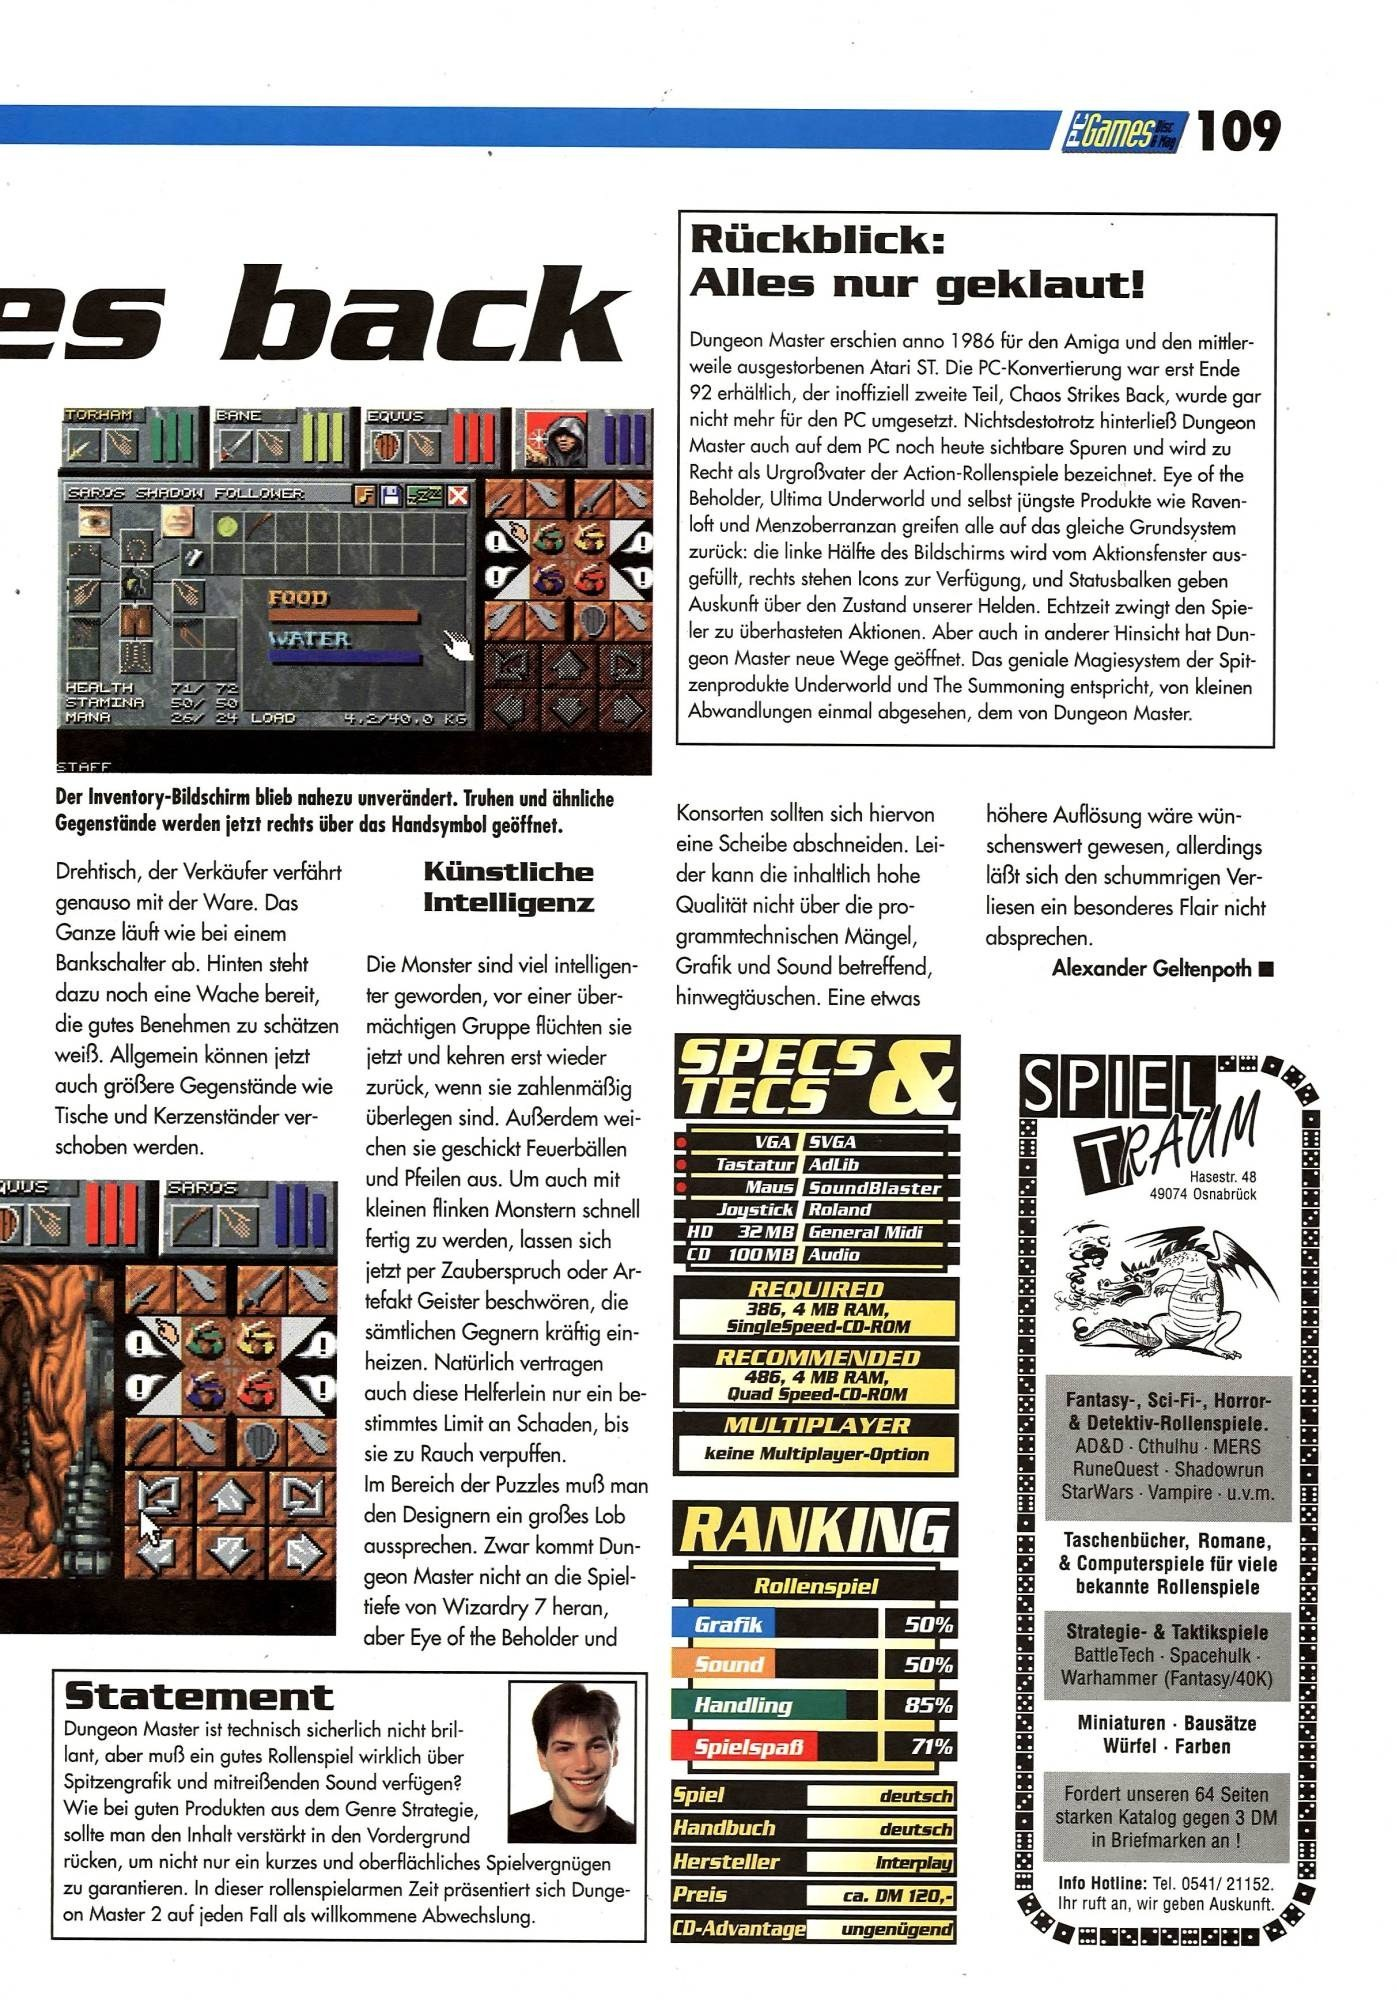 Dungeon Master II for PC Review published in German magazine 'PC Games', September 1995, Page 109